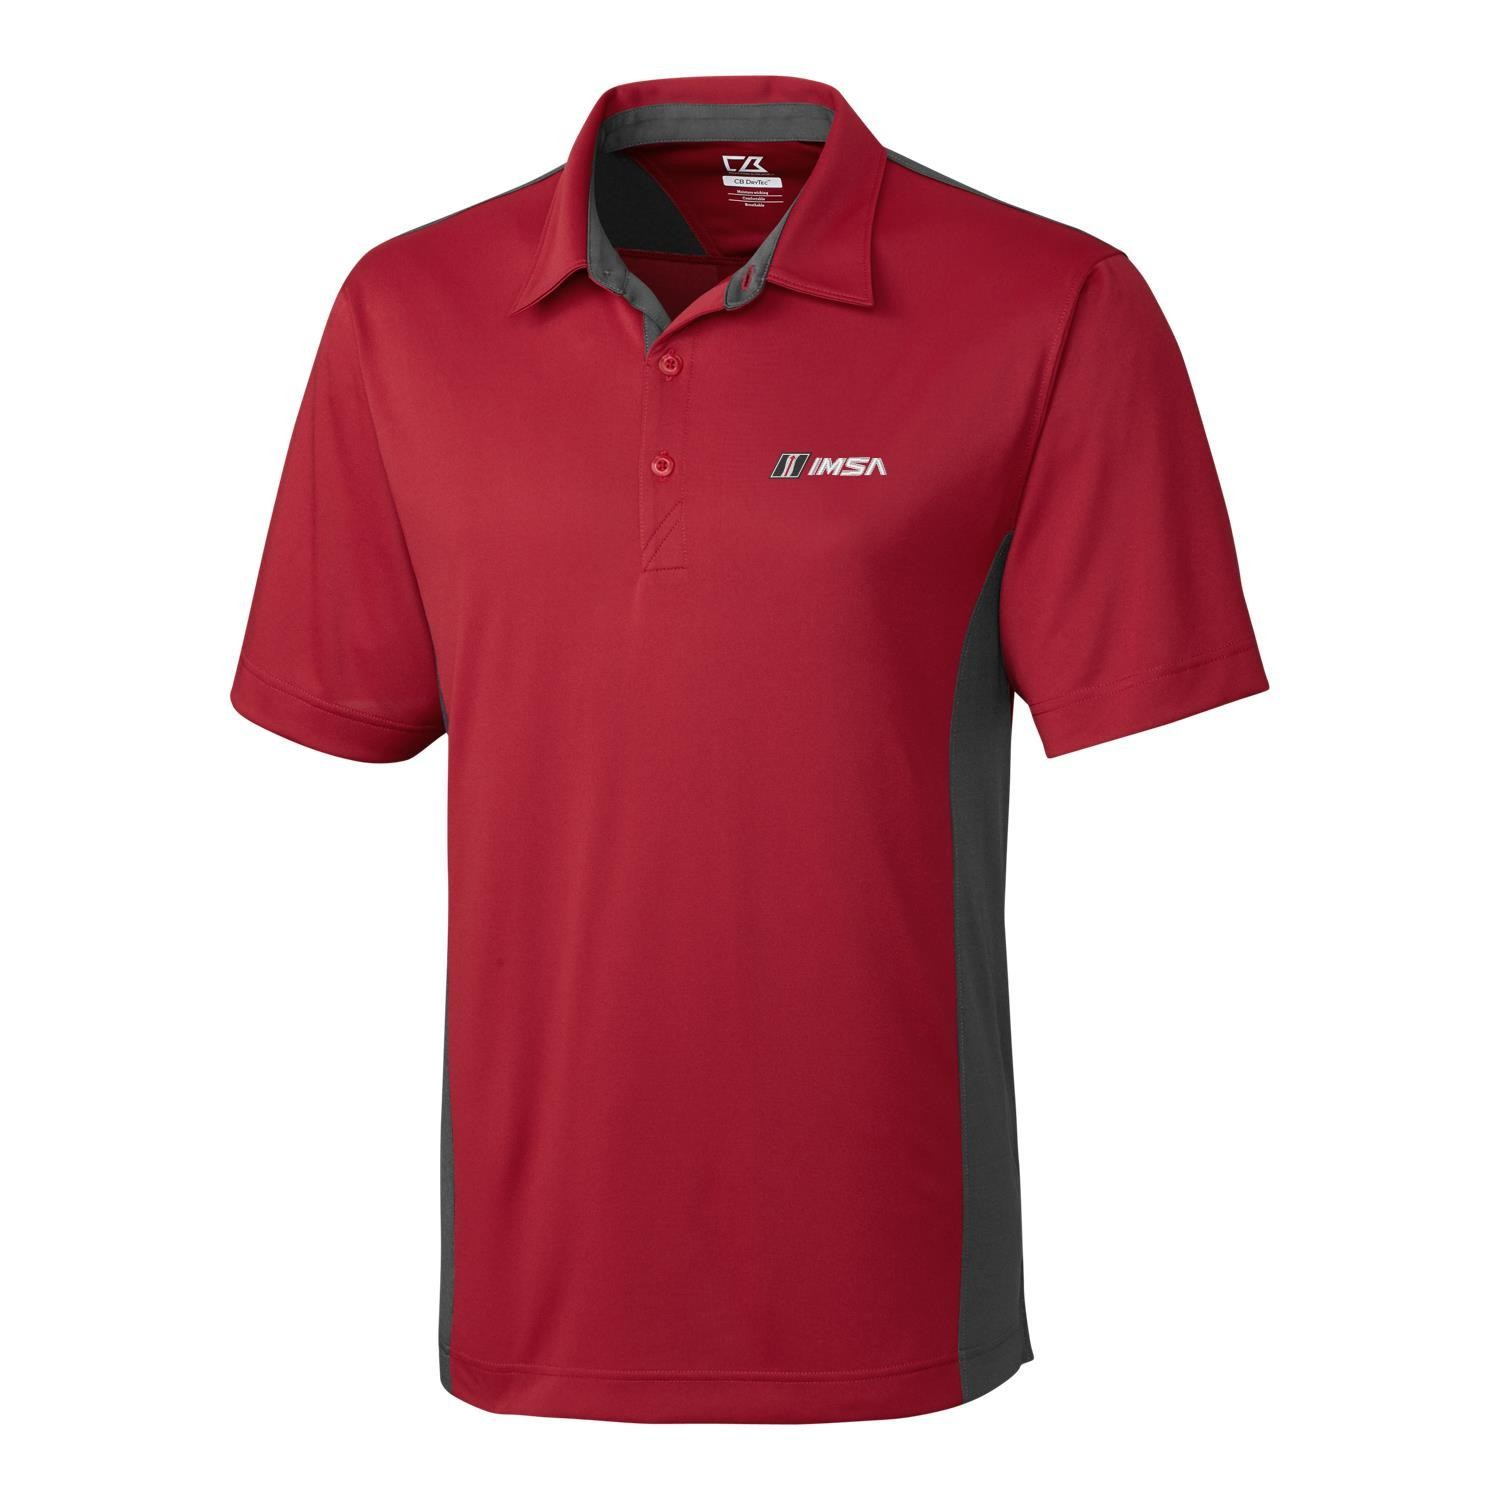 CB DryTec Willows Colorblock Polo Cardinal Red/Onyx